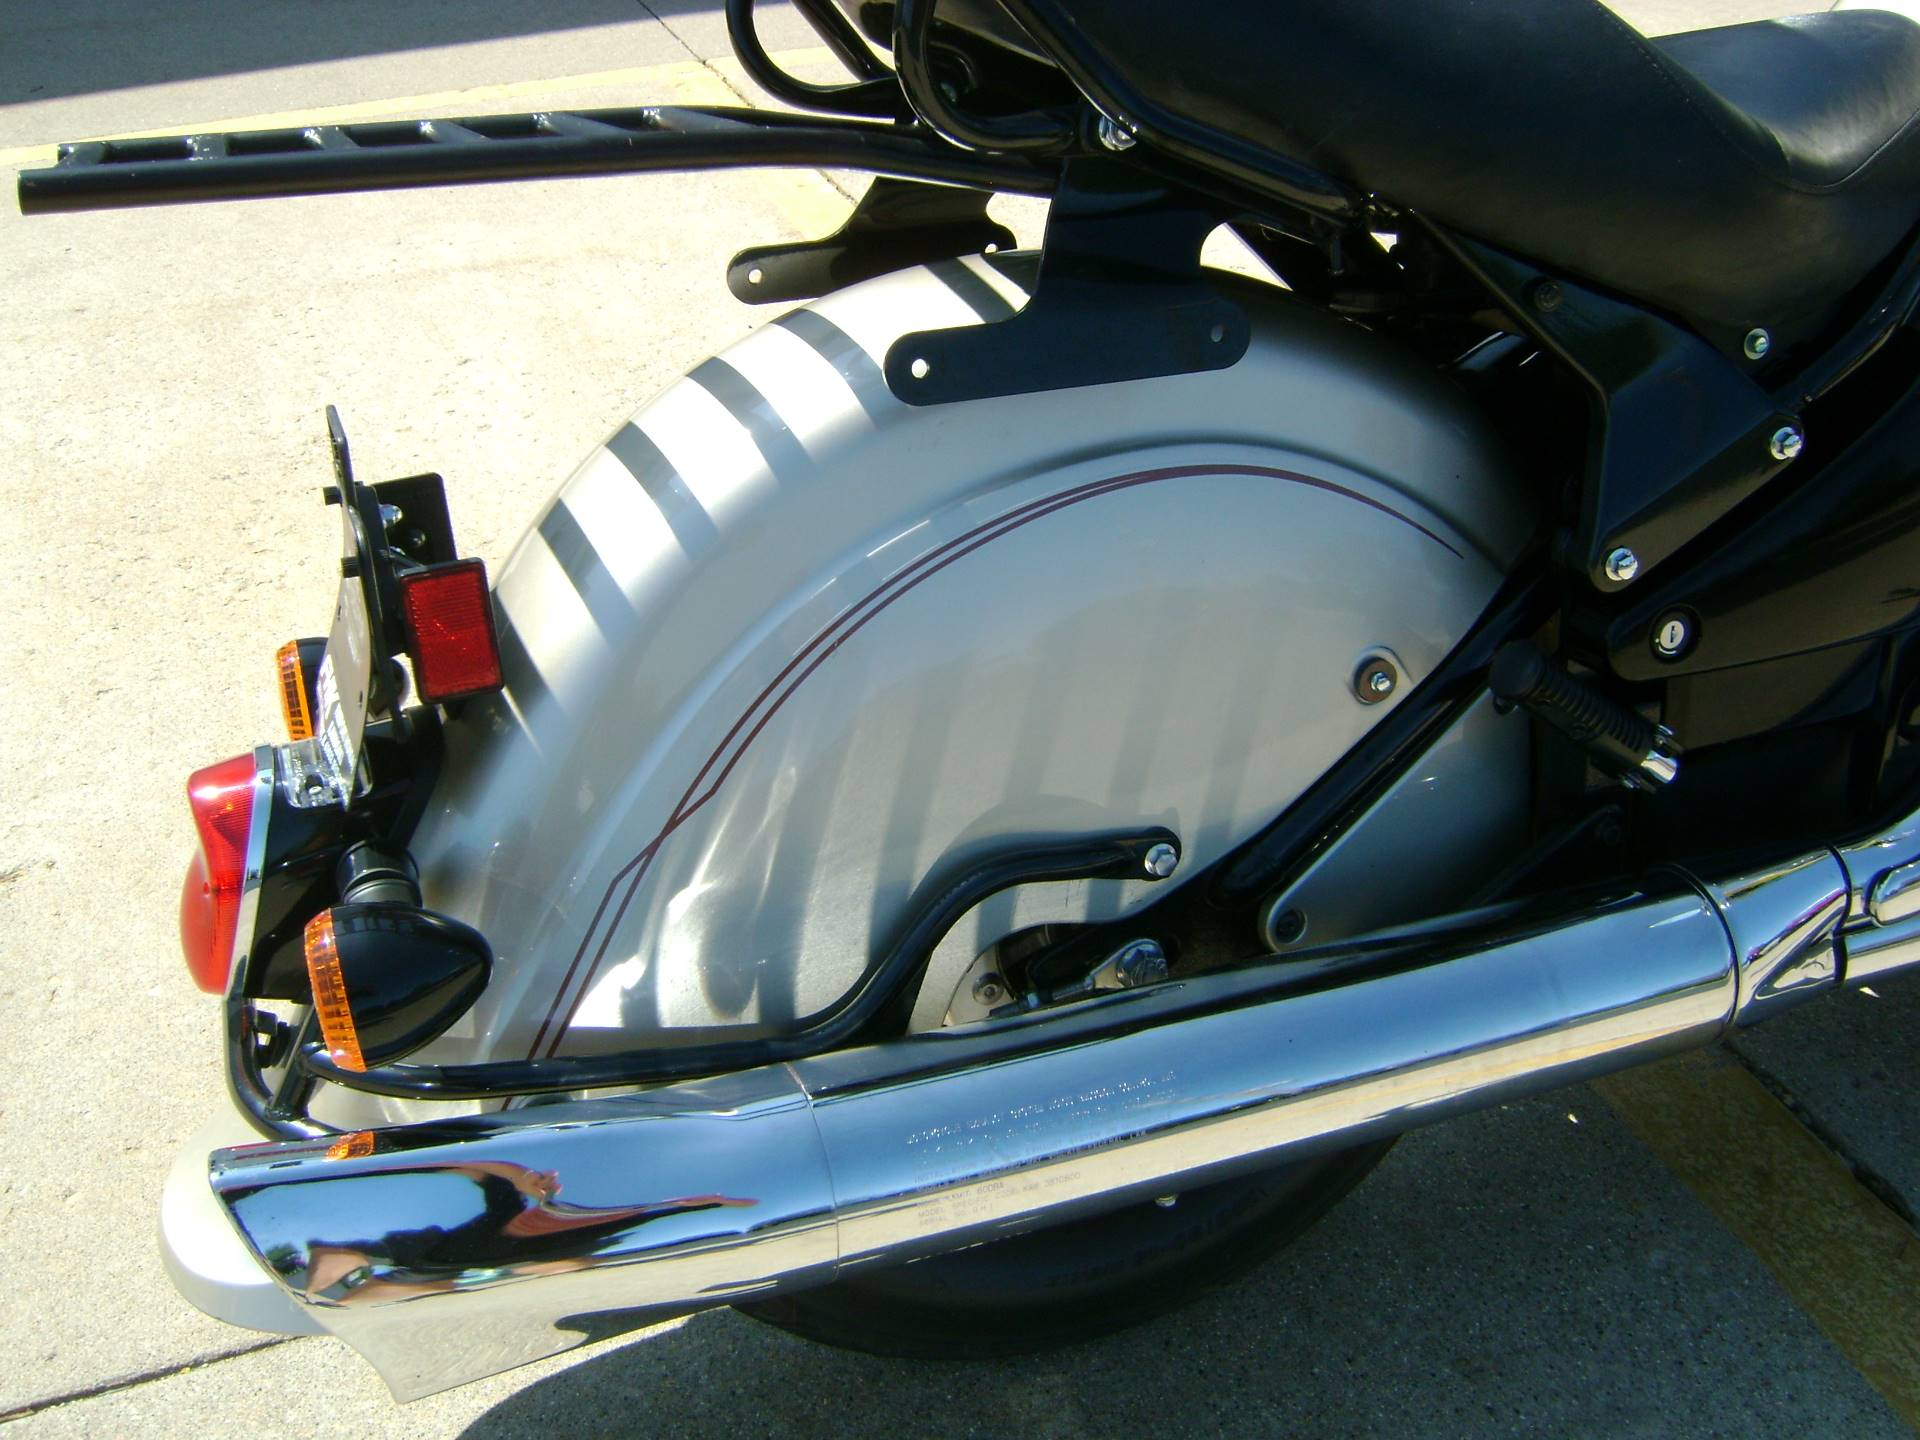 2000 Kawasaki VULCAN DRIFTER 800 in Freeport, Illinois - Photo 10